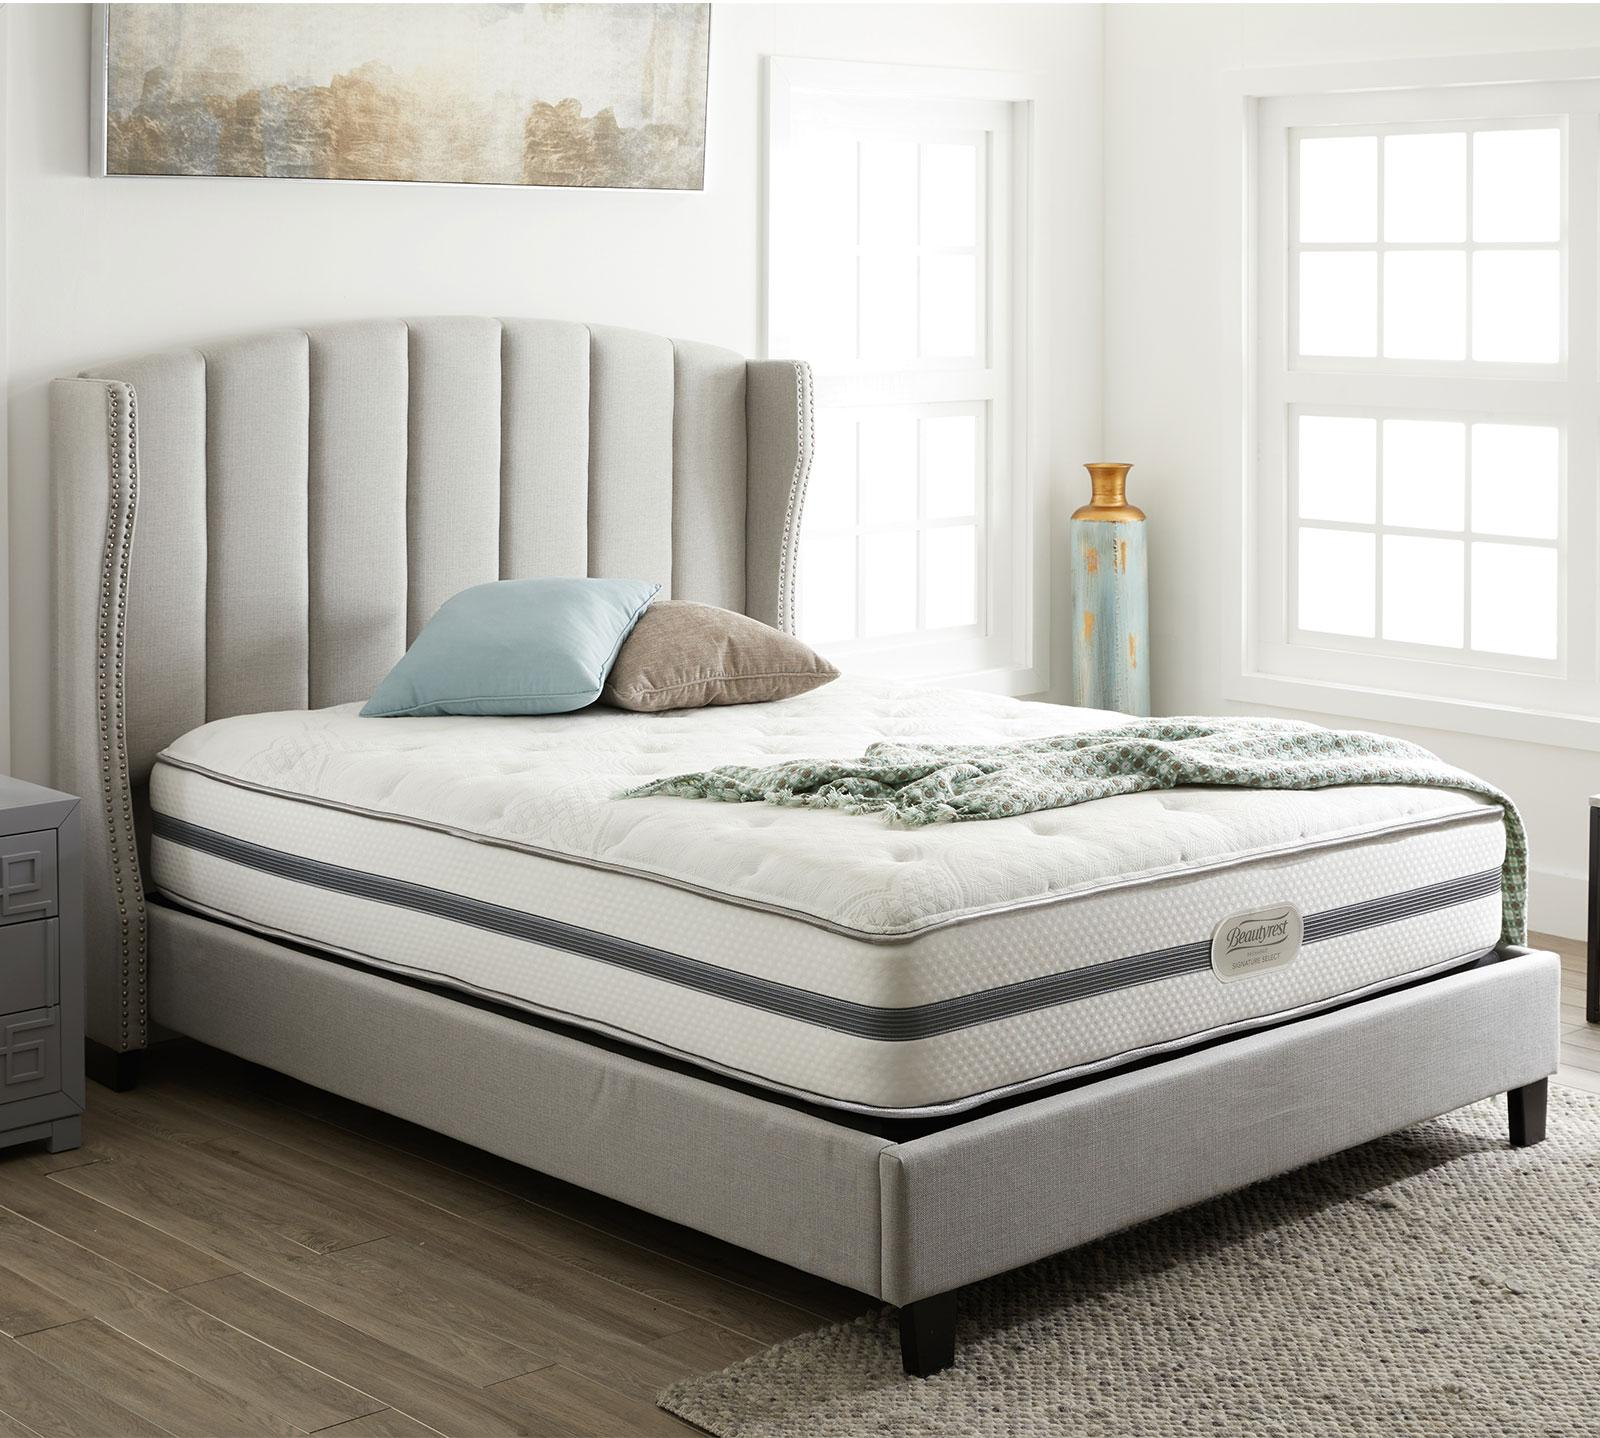 Full Bed Mattress Recharge Ashaway 11